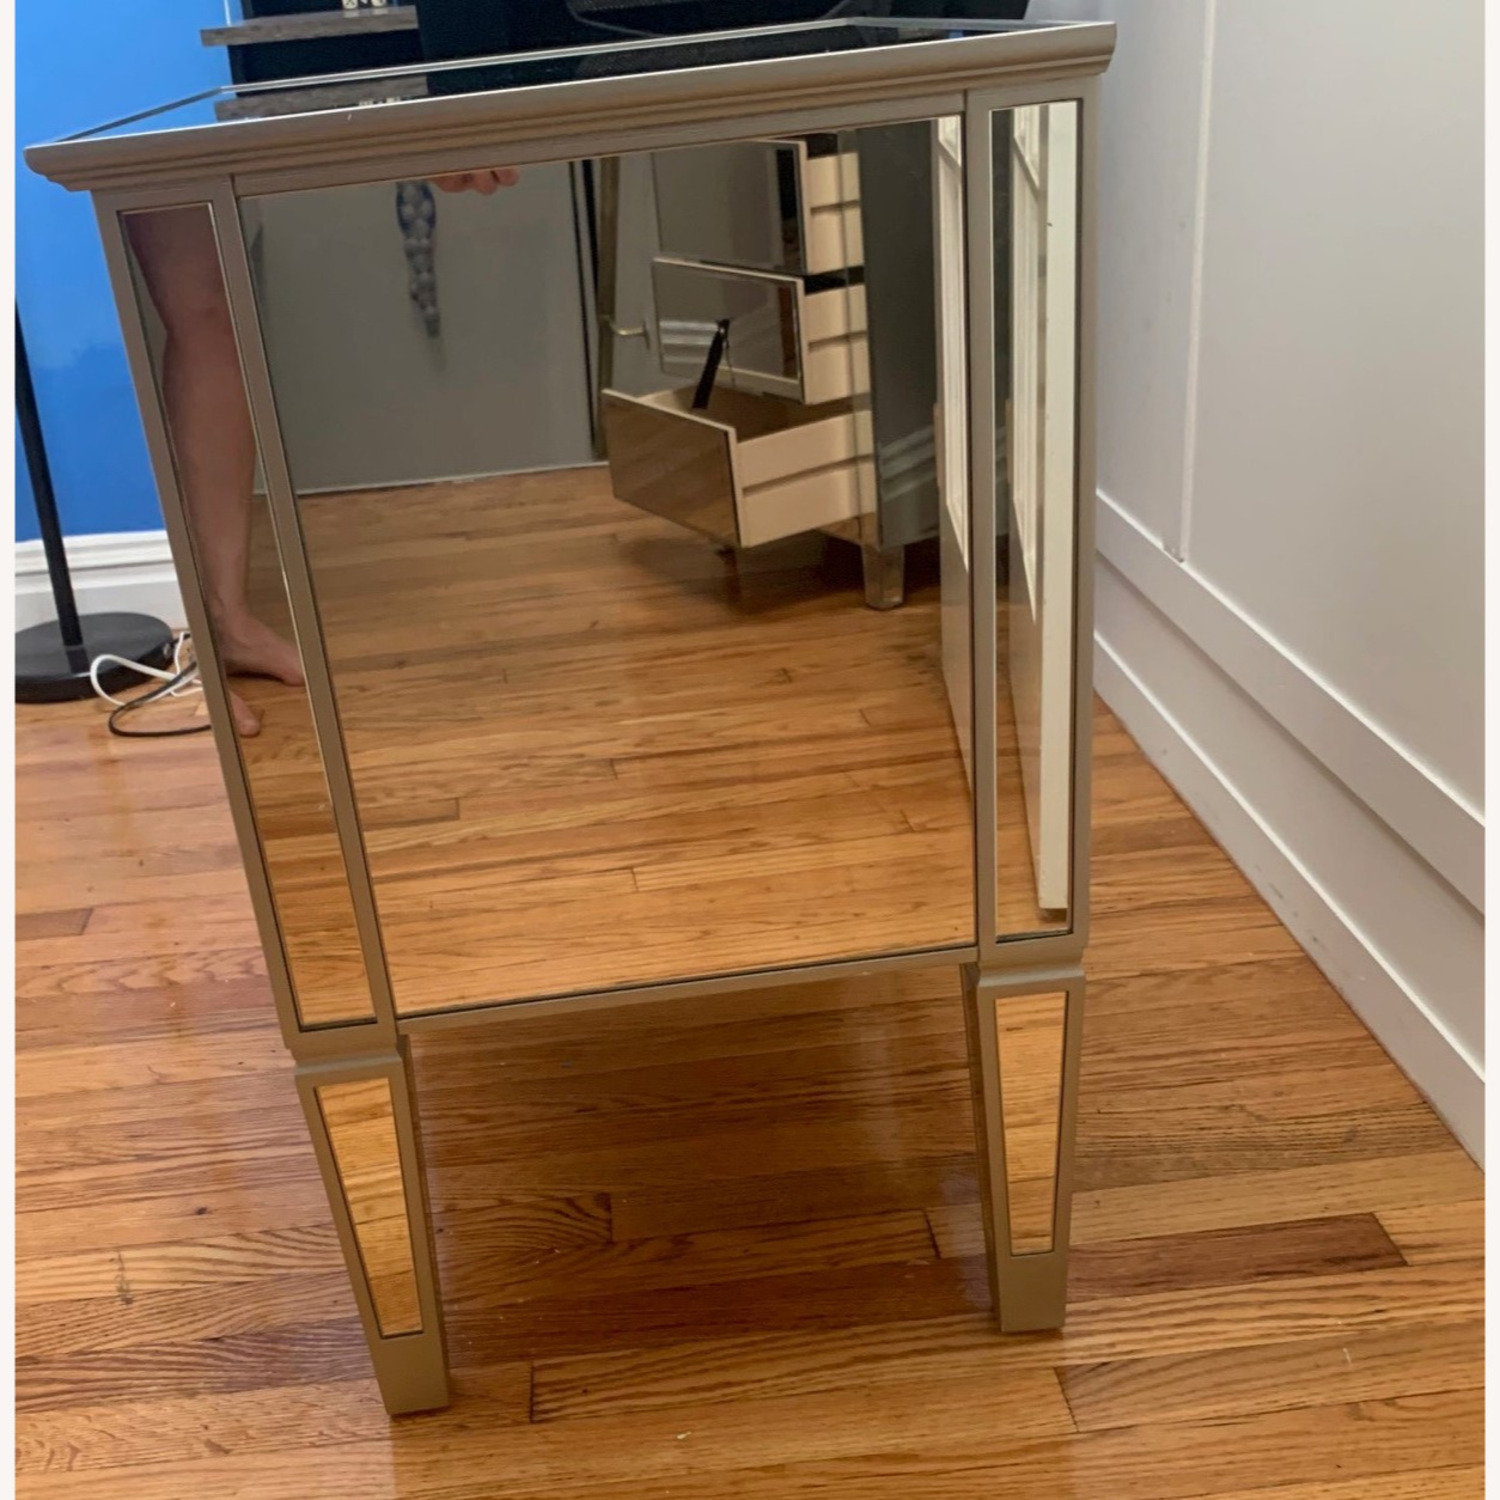 Pottery Barn Mirrored Bedside Tables - image-4